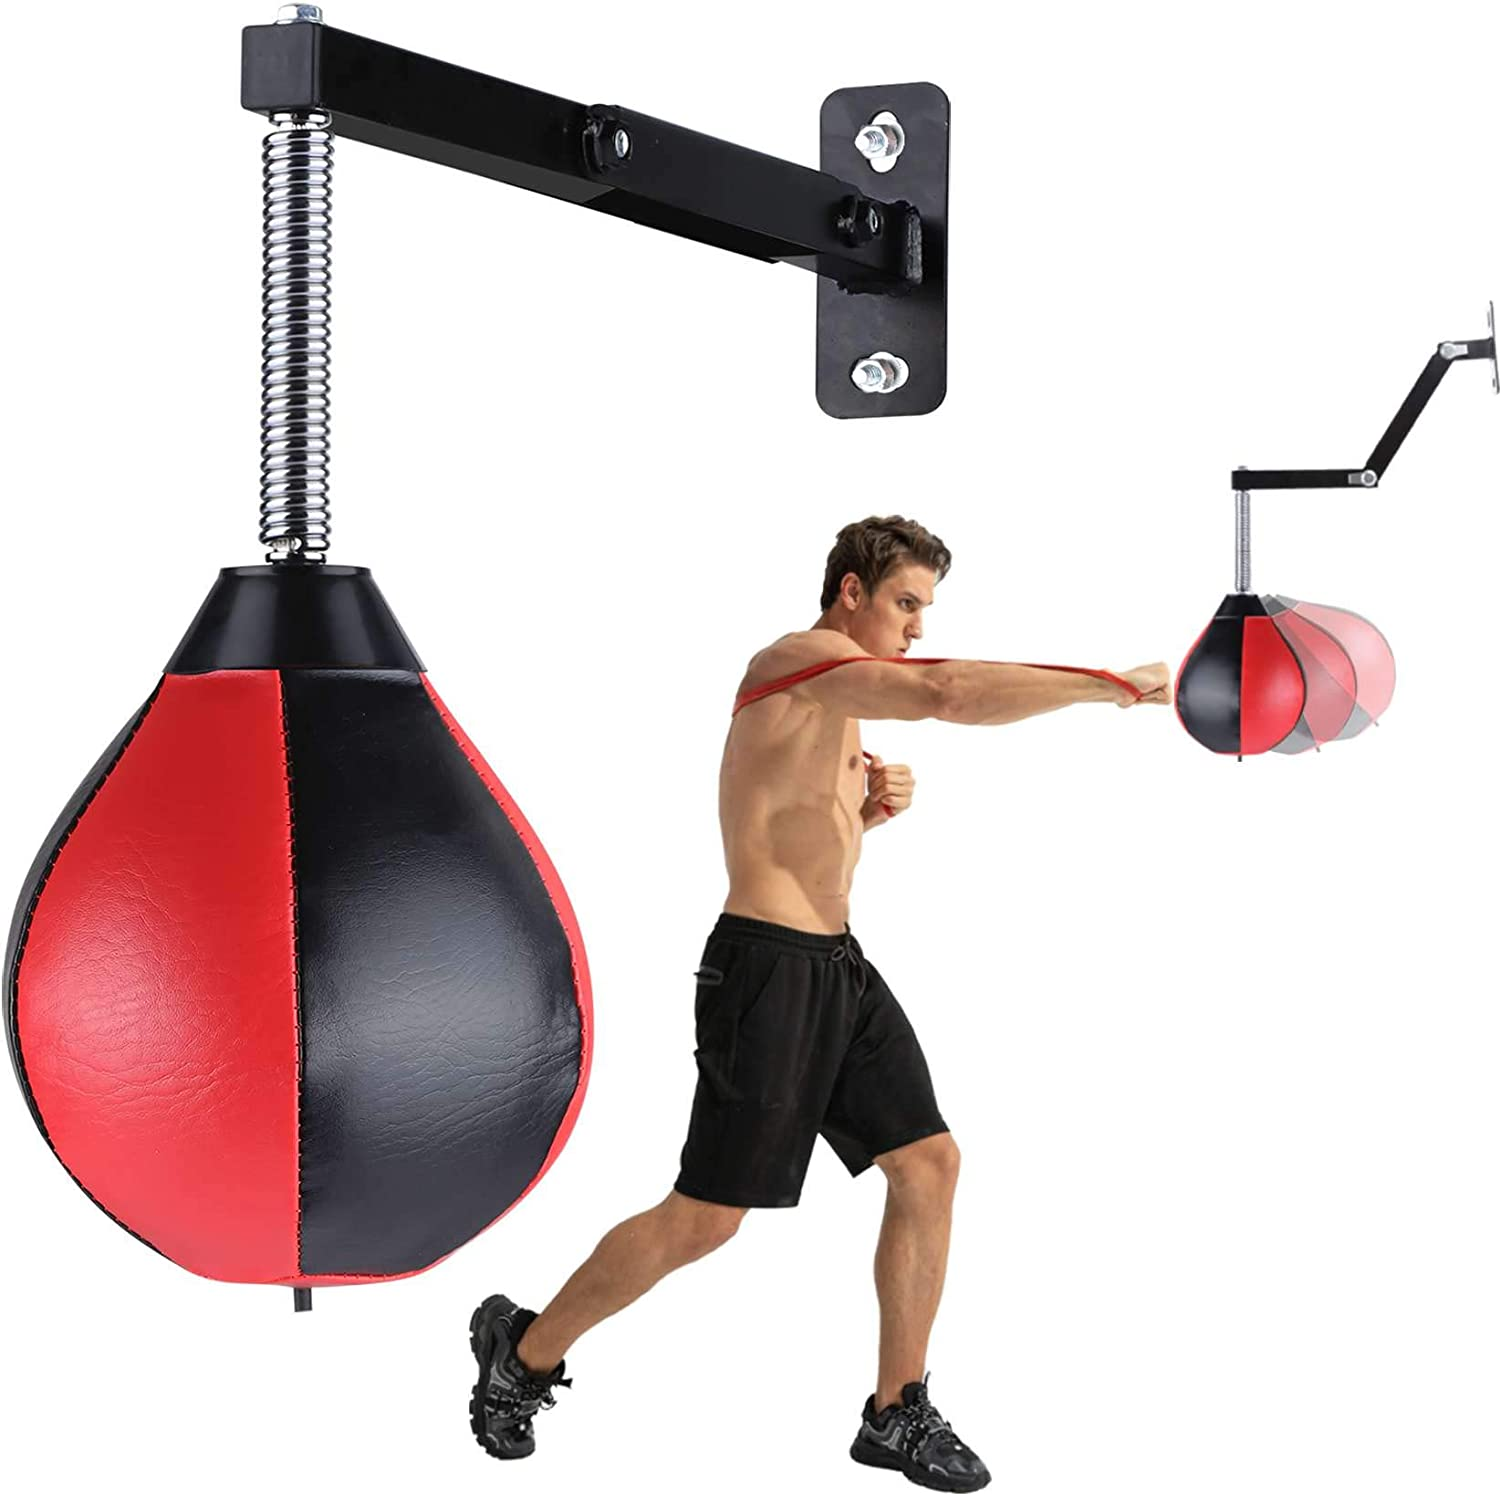 Boxer Training Speedbag Platform Adjustable Heavy-Duty Durable Boxing Workout